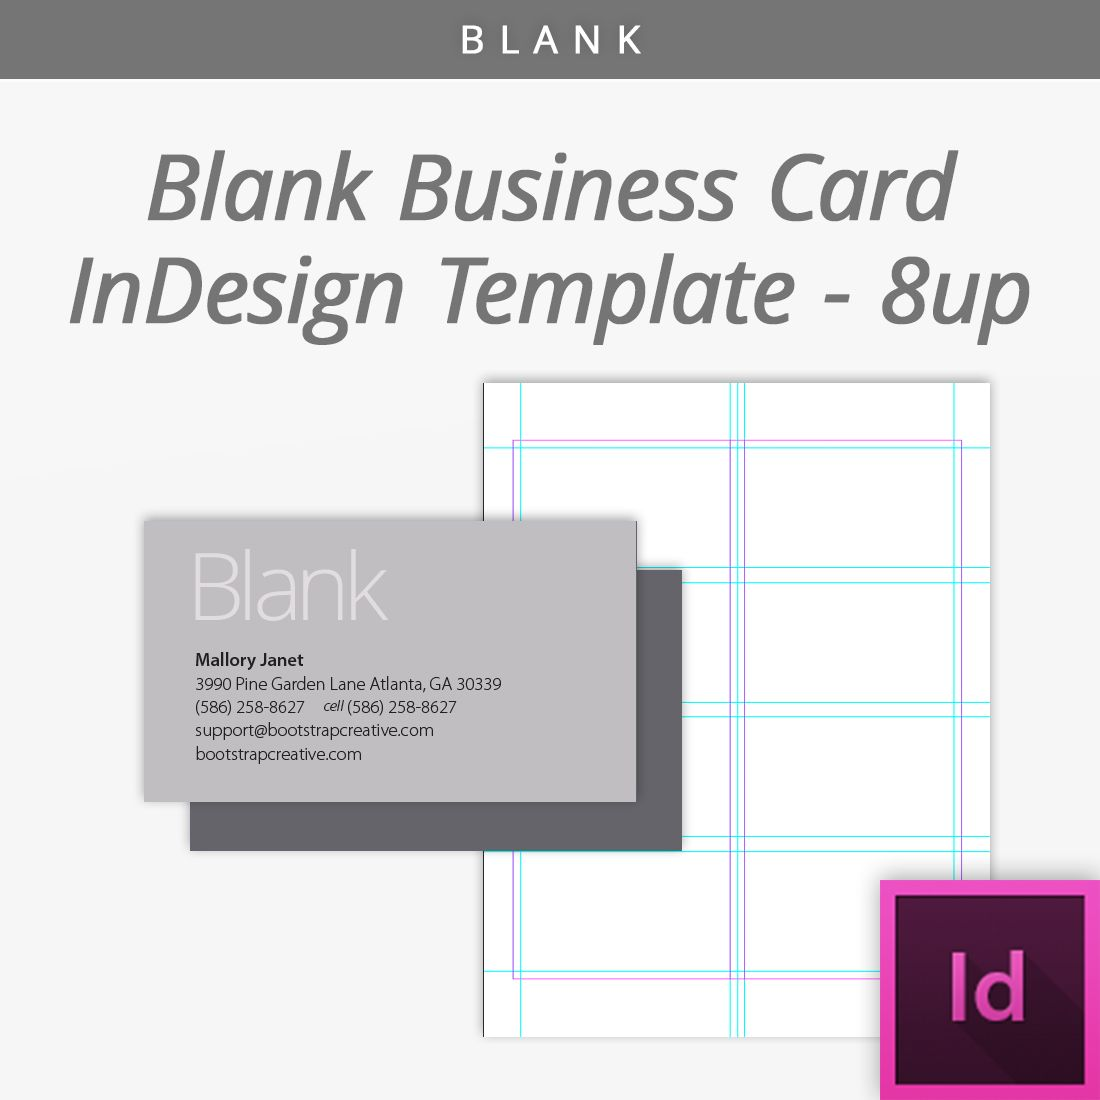 Blank InDesign Business Card Template Up Free Download - Business card template for indesign